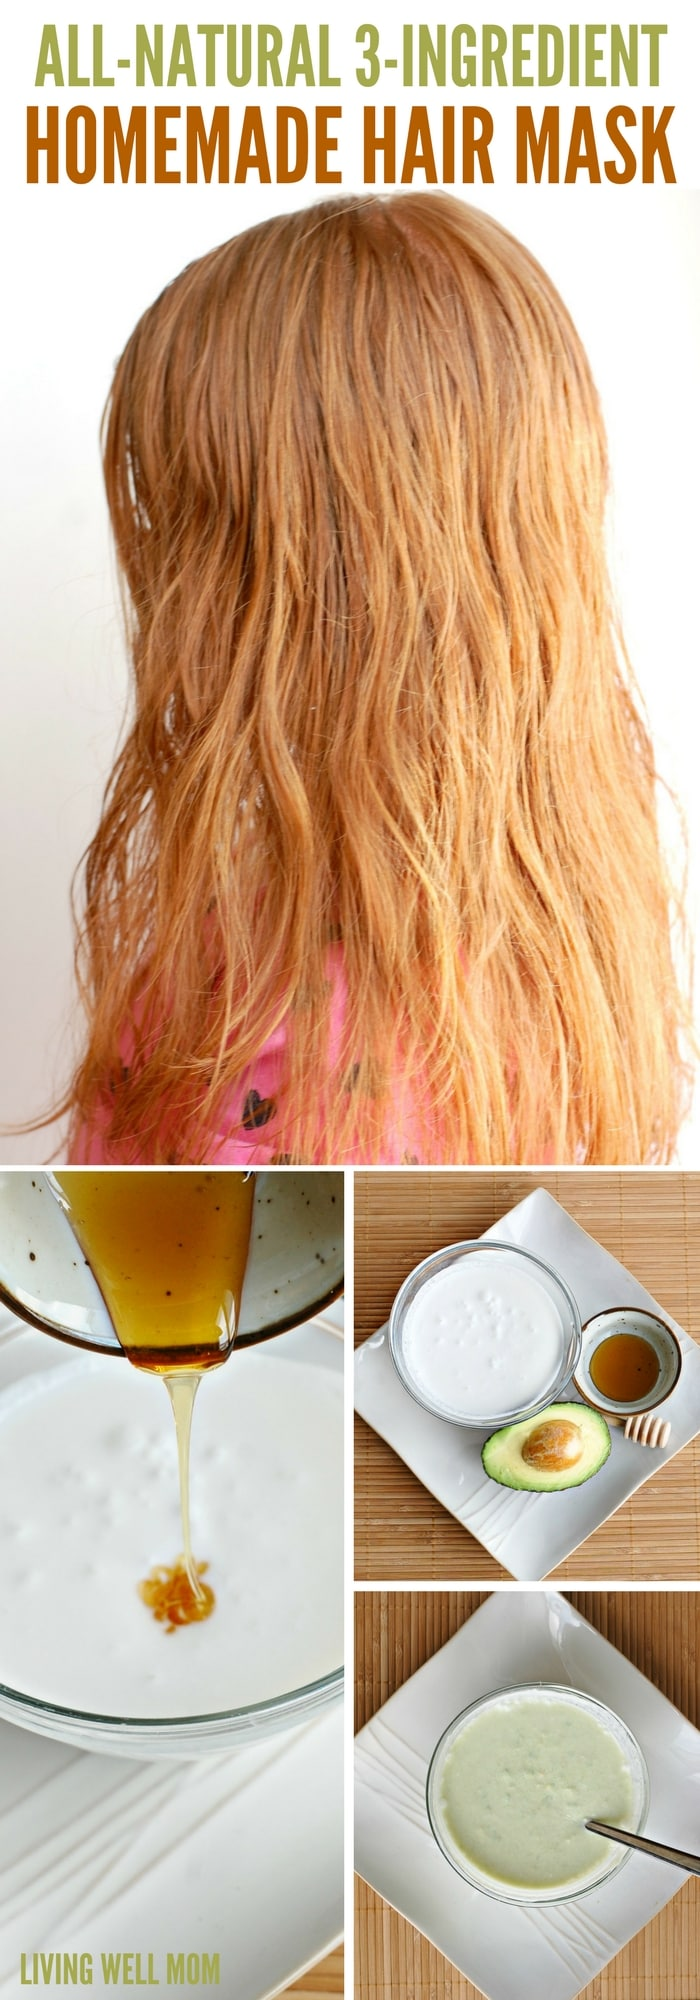 Deep condition and restore dull hair with this simple 3-ingredient, all-natural homemade hair mask. It's gentle and easy enough to use on kids too!